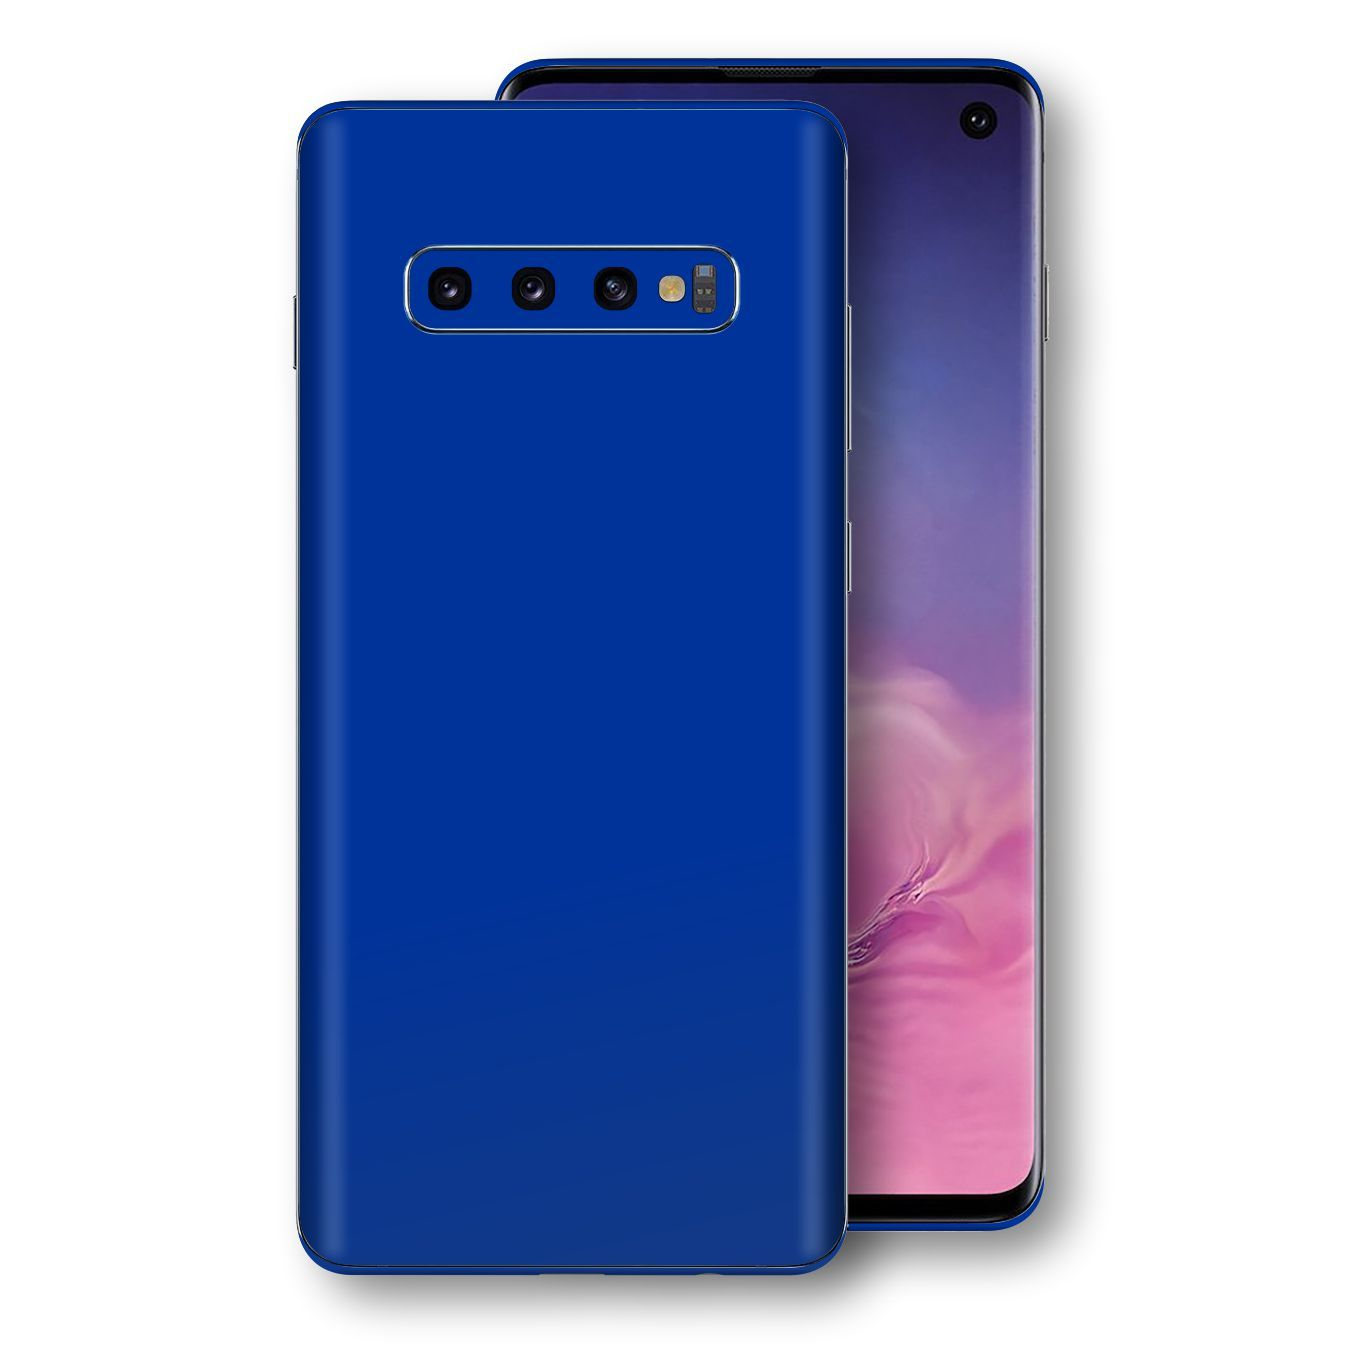 Samsung Galaxy S10 Royal Blue Glossy Gloss Finish Skin, Decal, Wrap, Protector, Cover by EasySkinz | EasySkinz.com